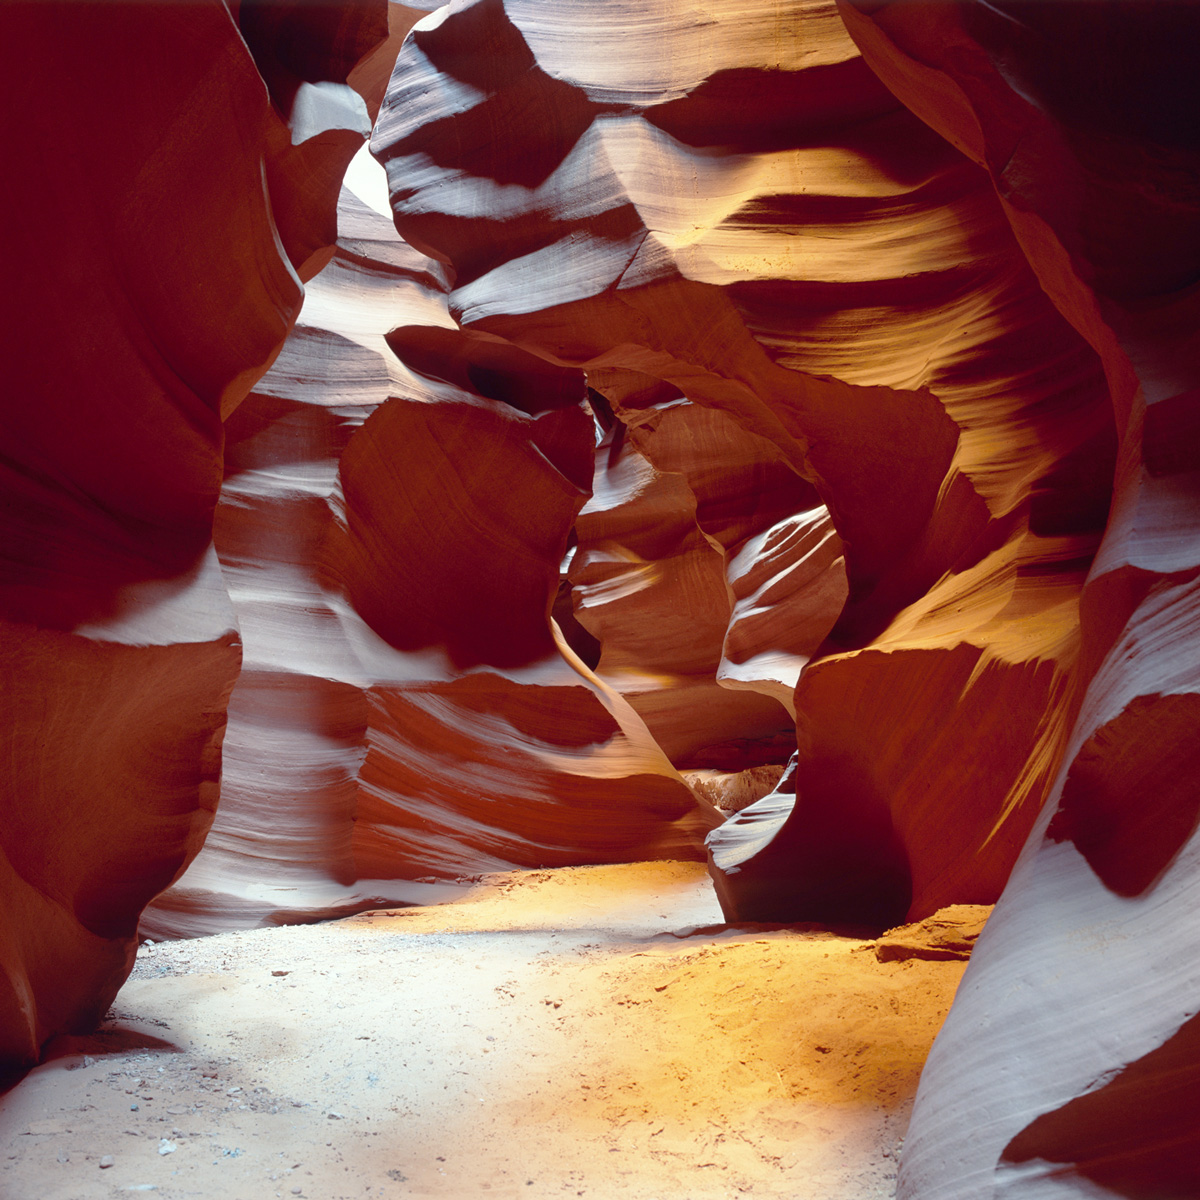 USA - Antelope Canyon